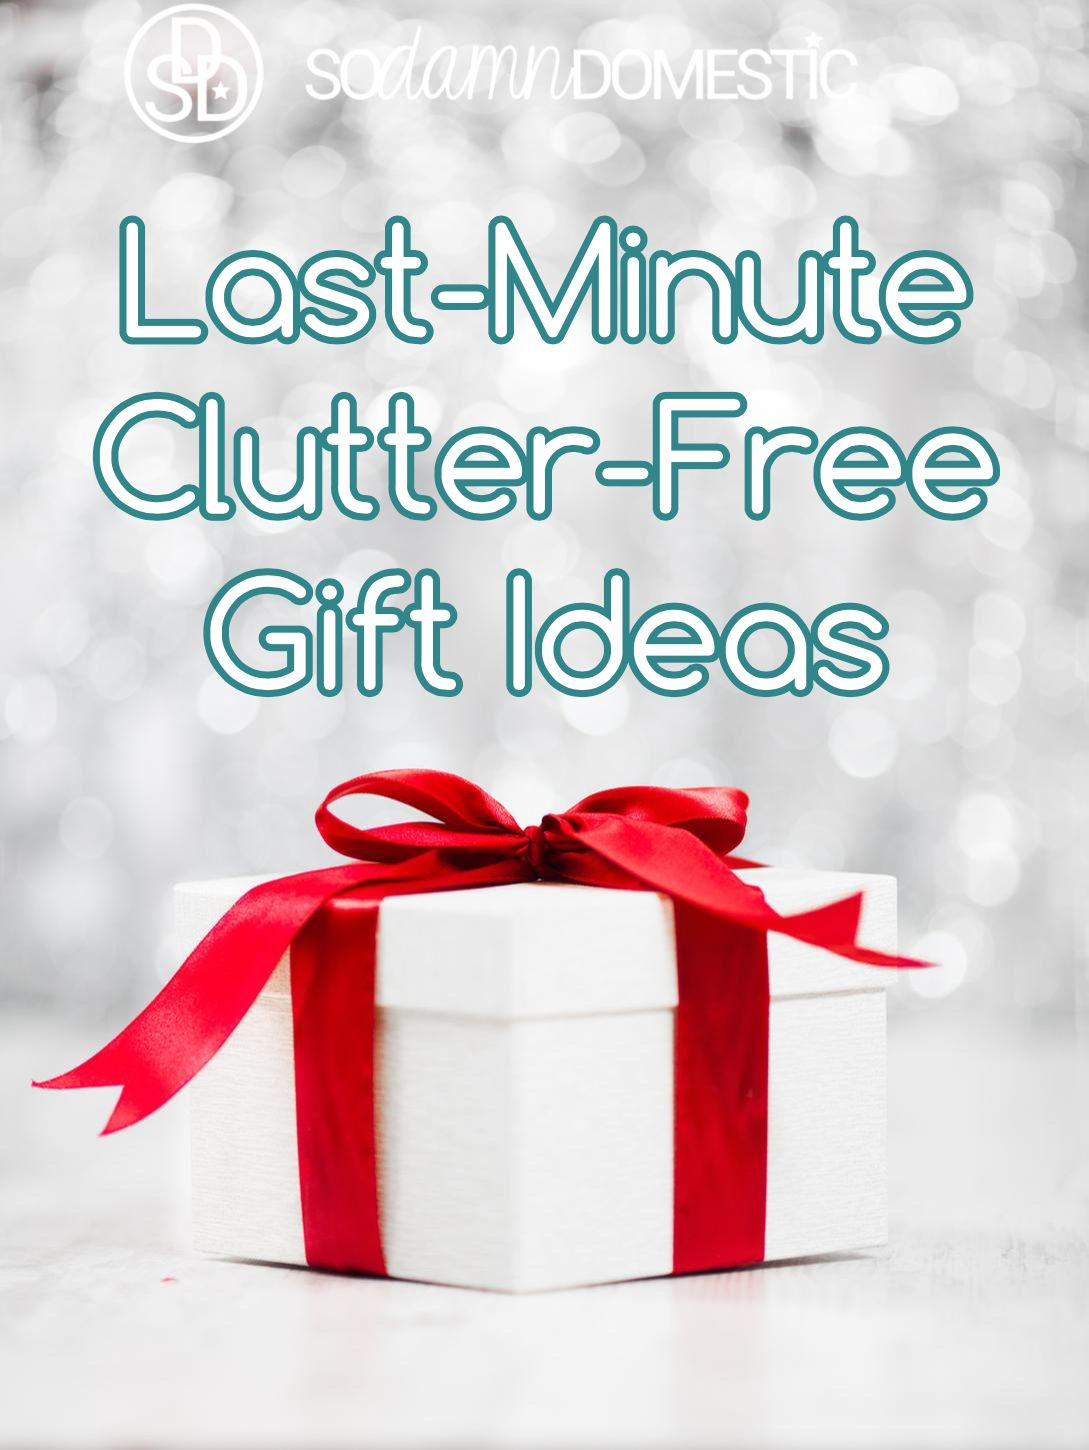 Last-Minute Clutter-Free Gift Ideas | Free gifts, Clutter and Gift